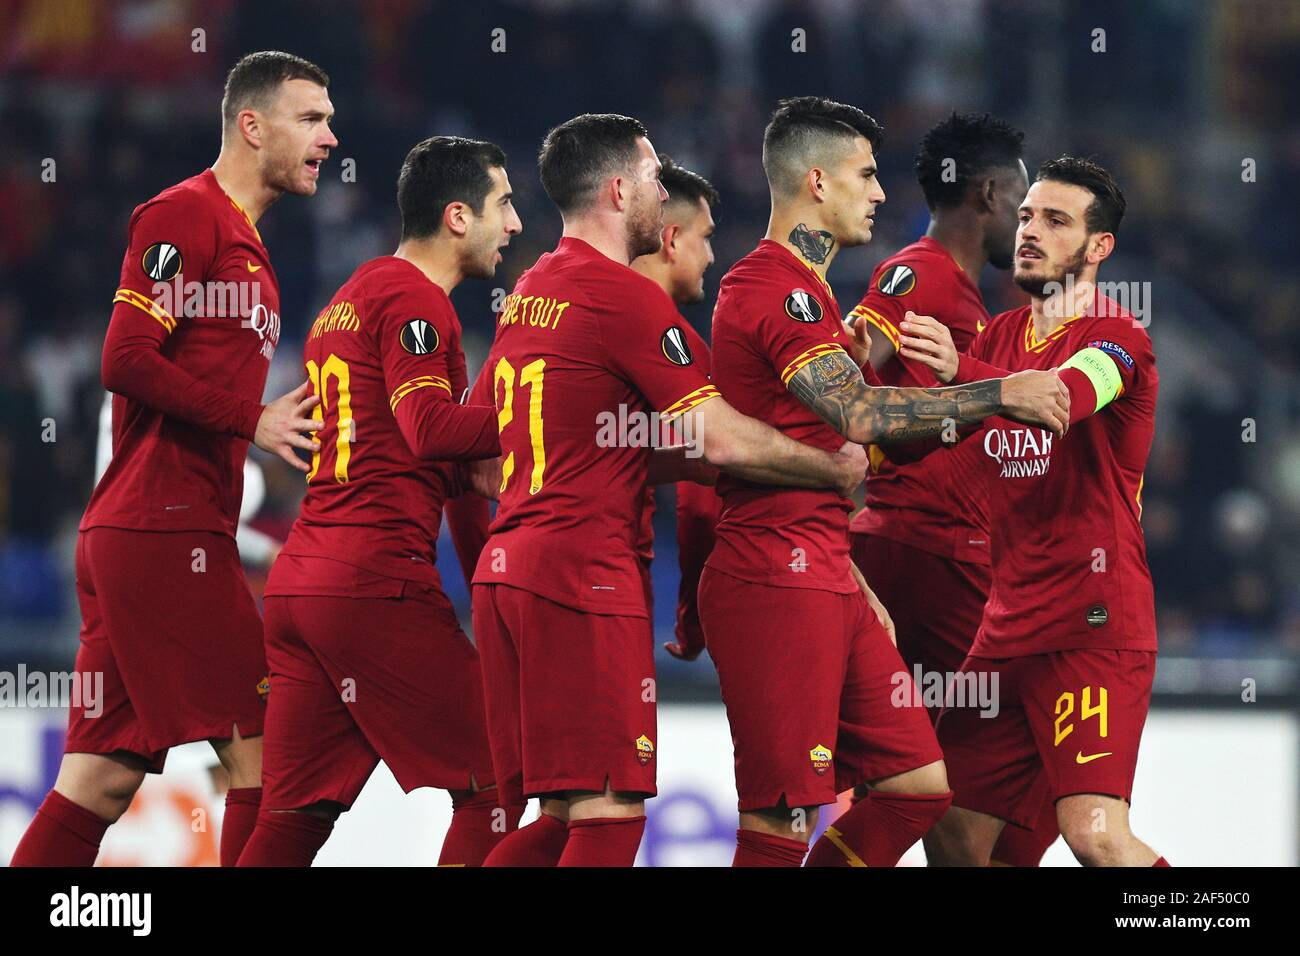 Diego Perotti of Roma celebrates with his teammates after scoring 1-0 goal during the UEFA Europa League, Group J football match between AS Roma and Wolfsberg AC on December 12, 2019 at Stadio Olimpico in Rome, Italy - Photo Federico Proietti/ESPA-Imaes Stock Photo